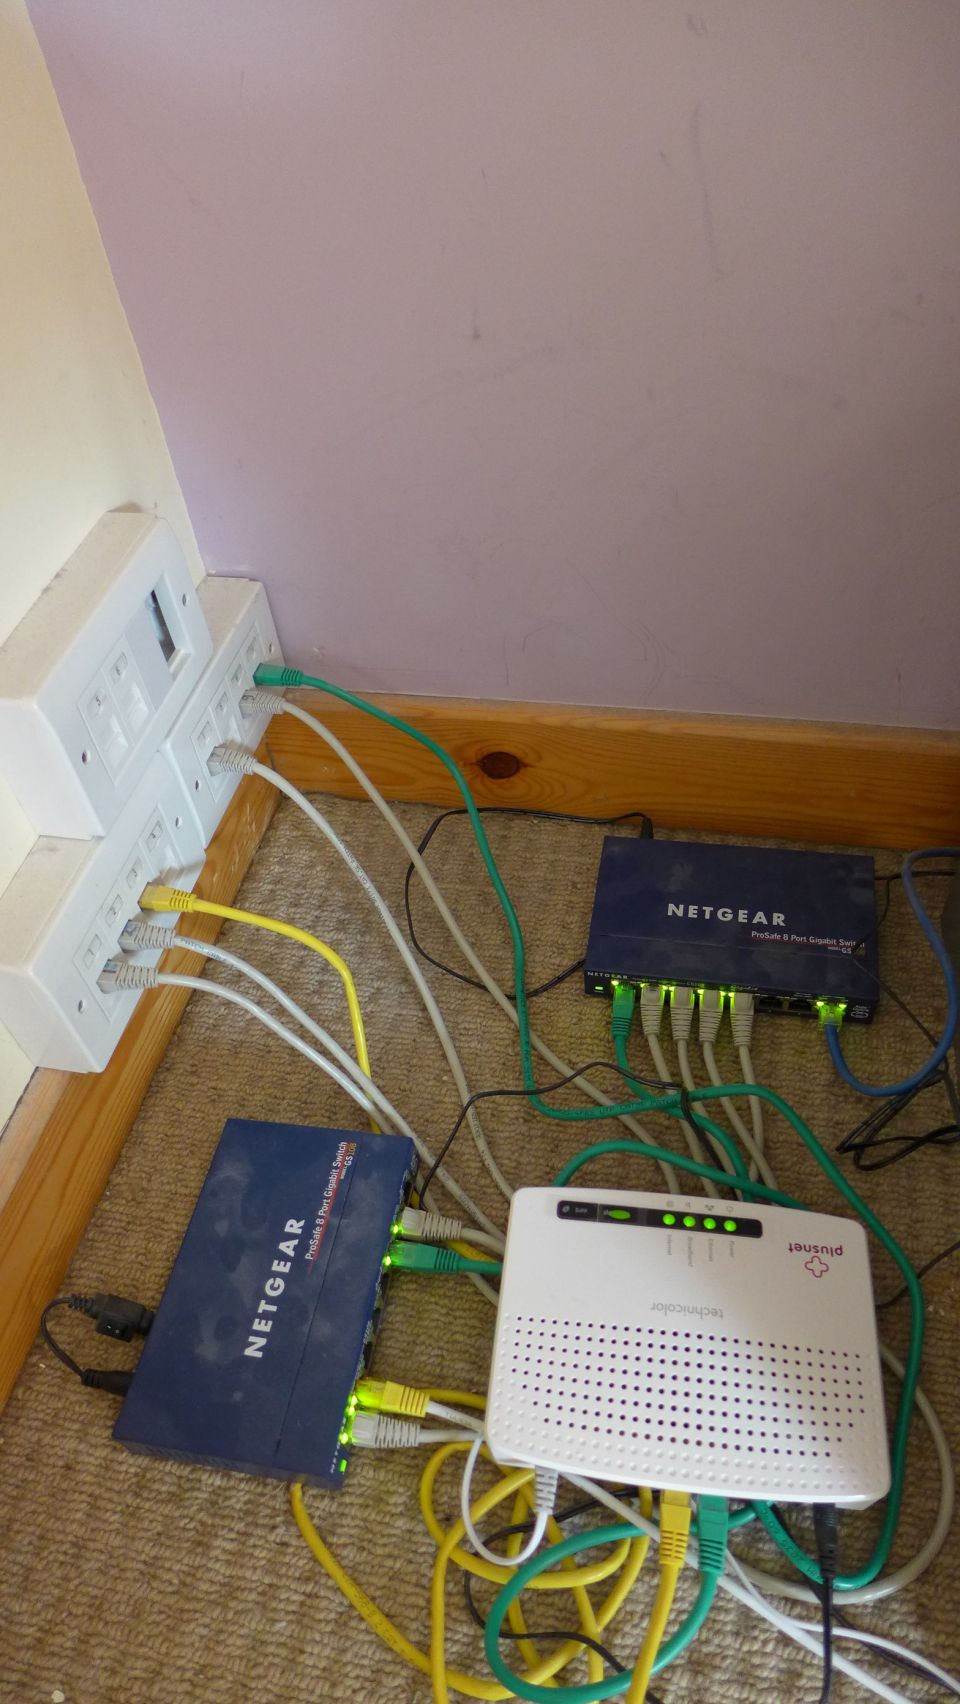 hight resolution of home network hub